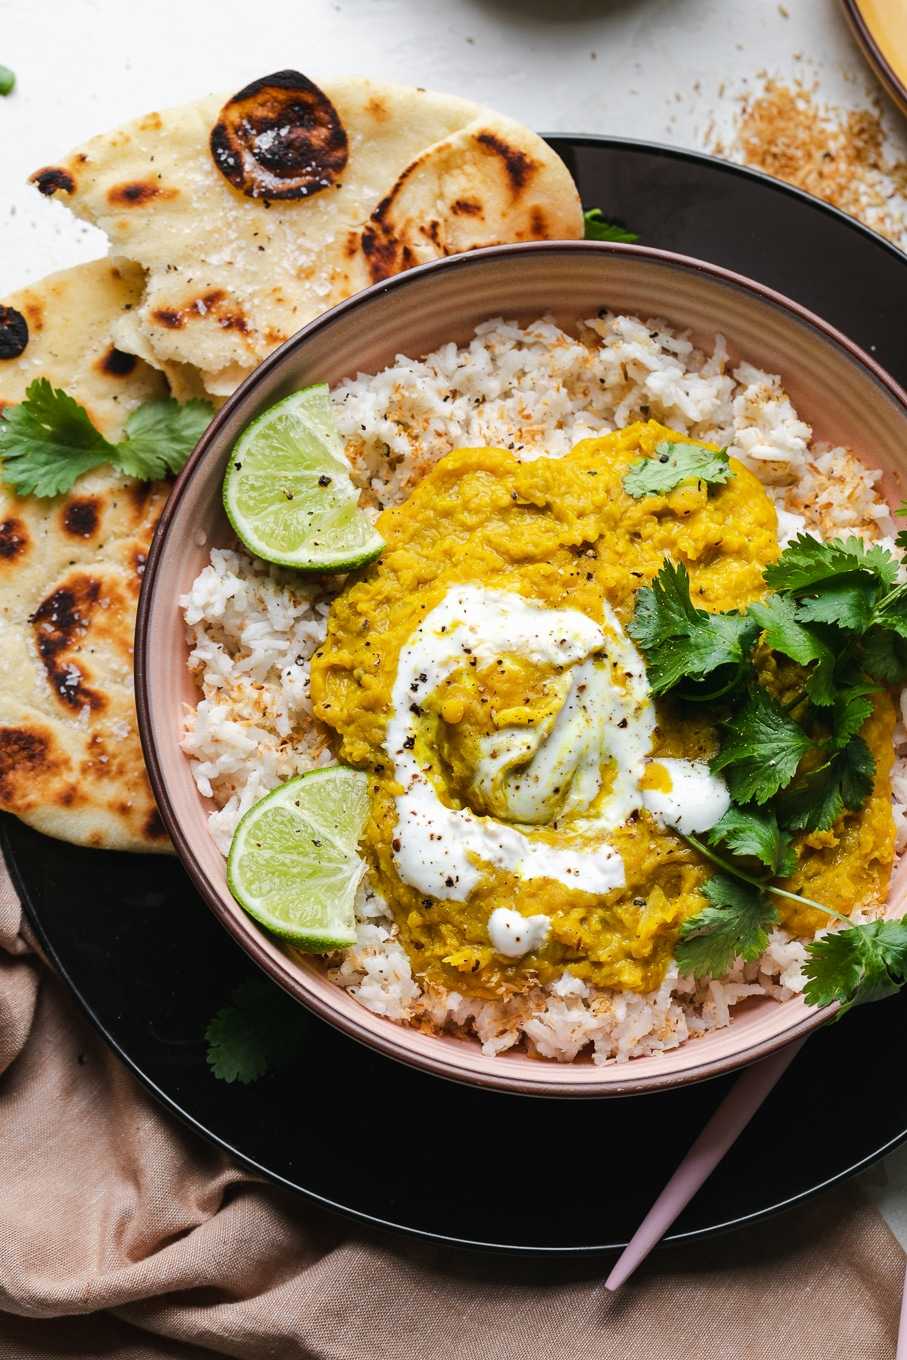 Overhead shot of a bowl with rice, lentil dal, cilantro, and lime wedges